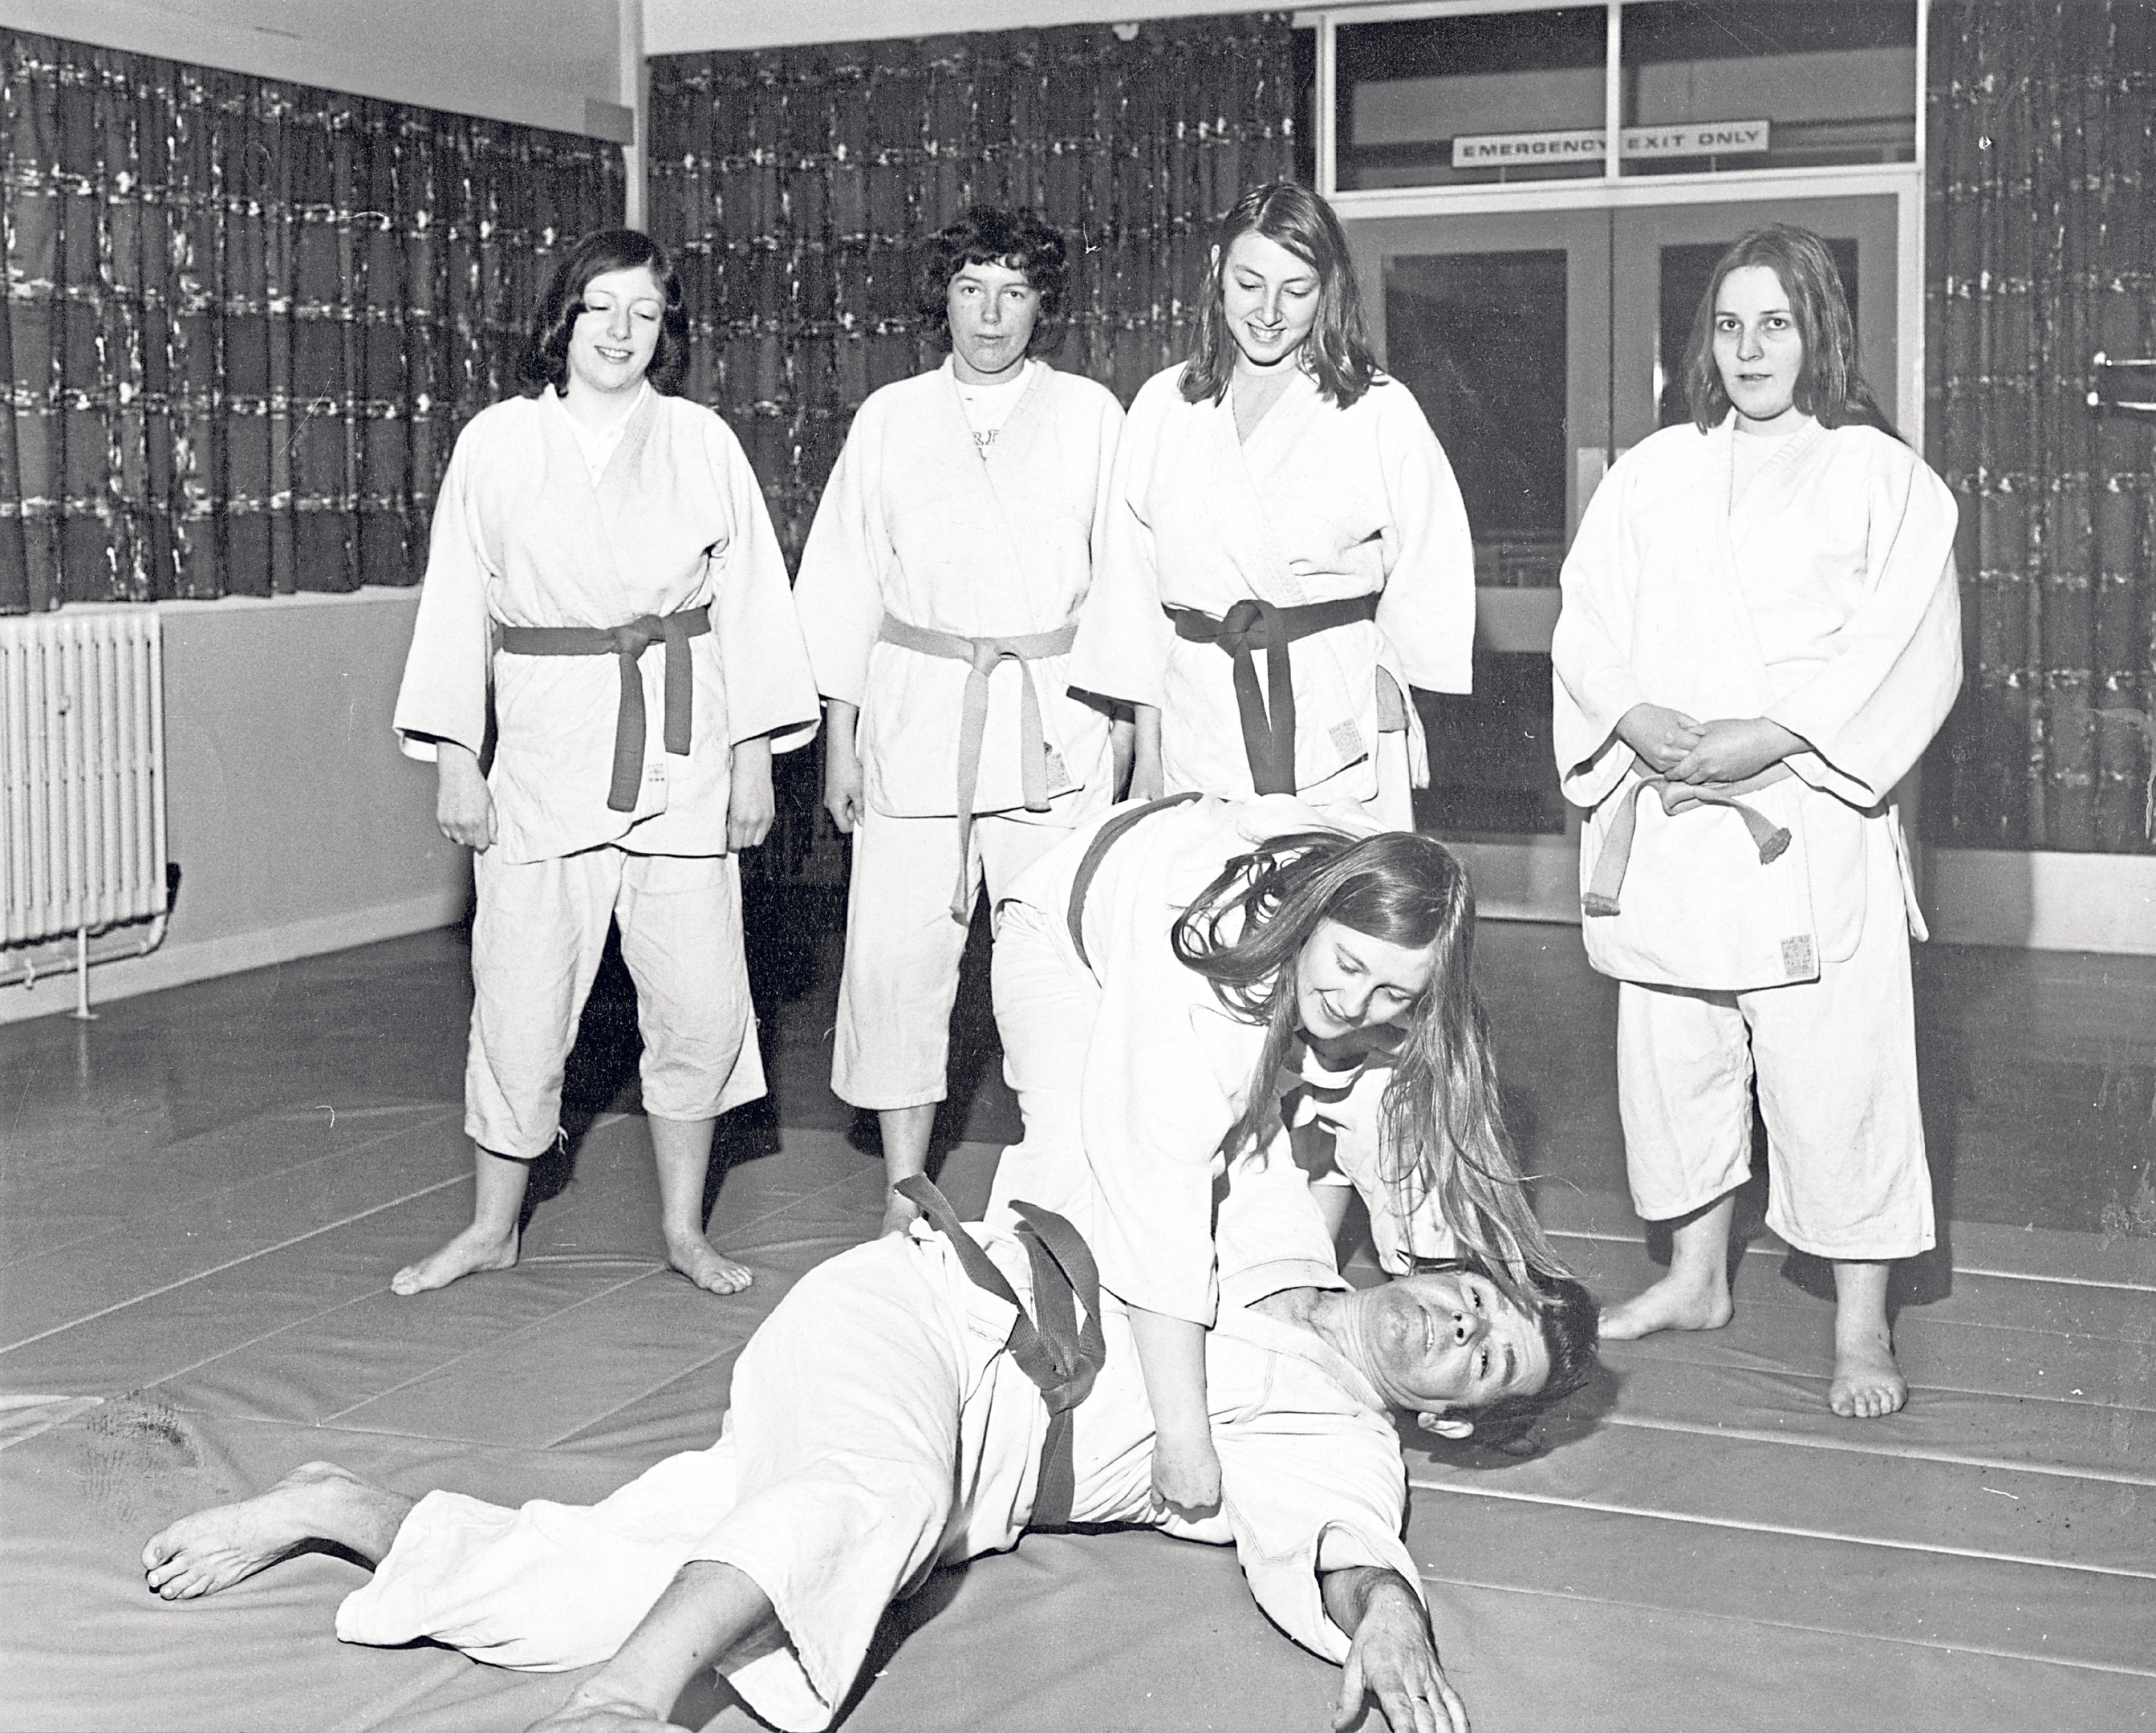 Aberdeen University women's judo team and coach Harry Black